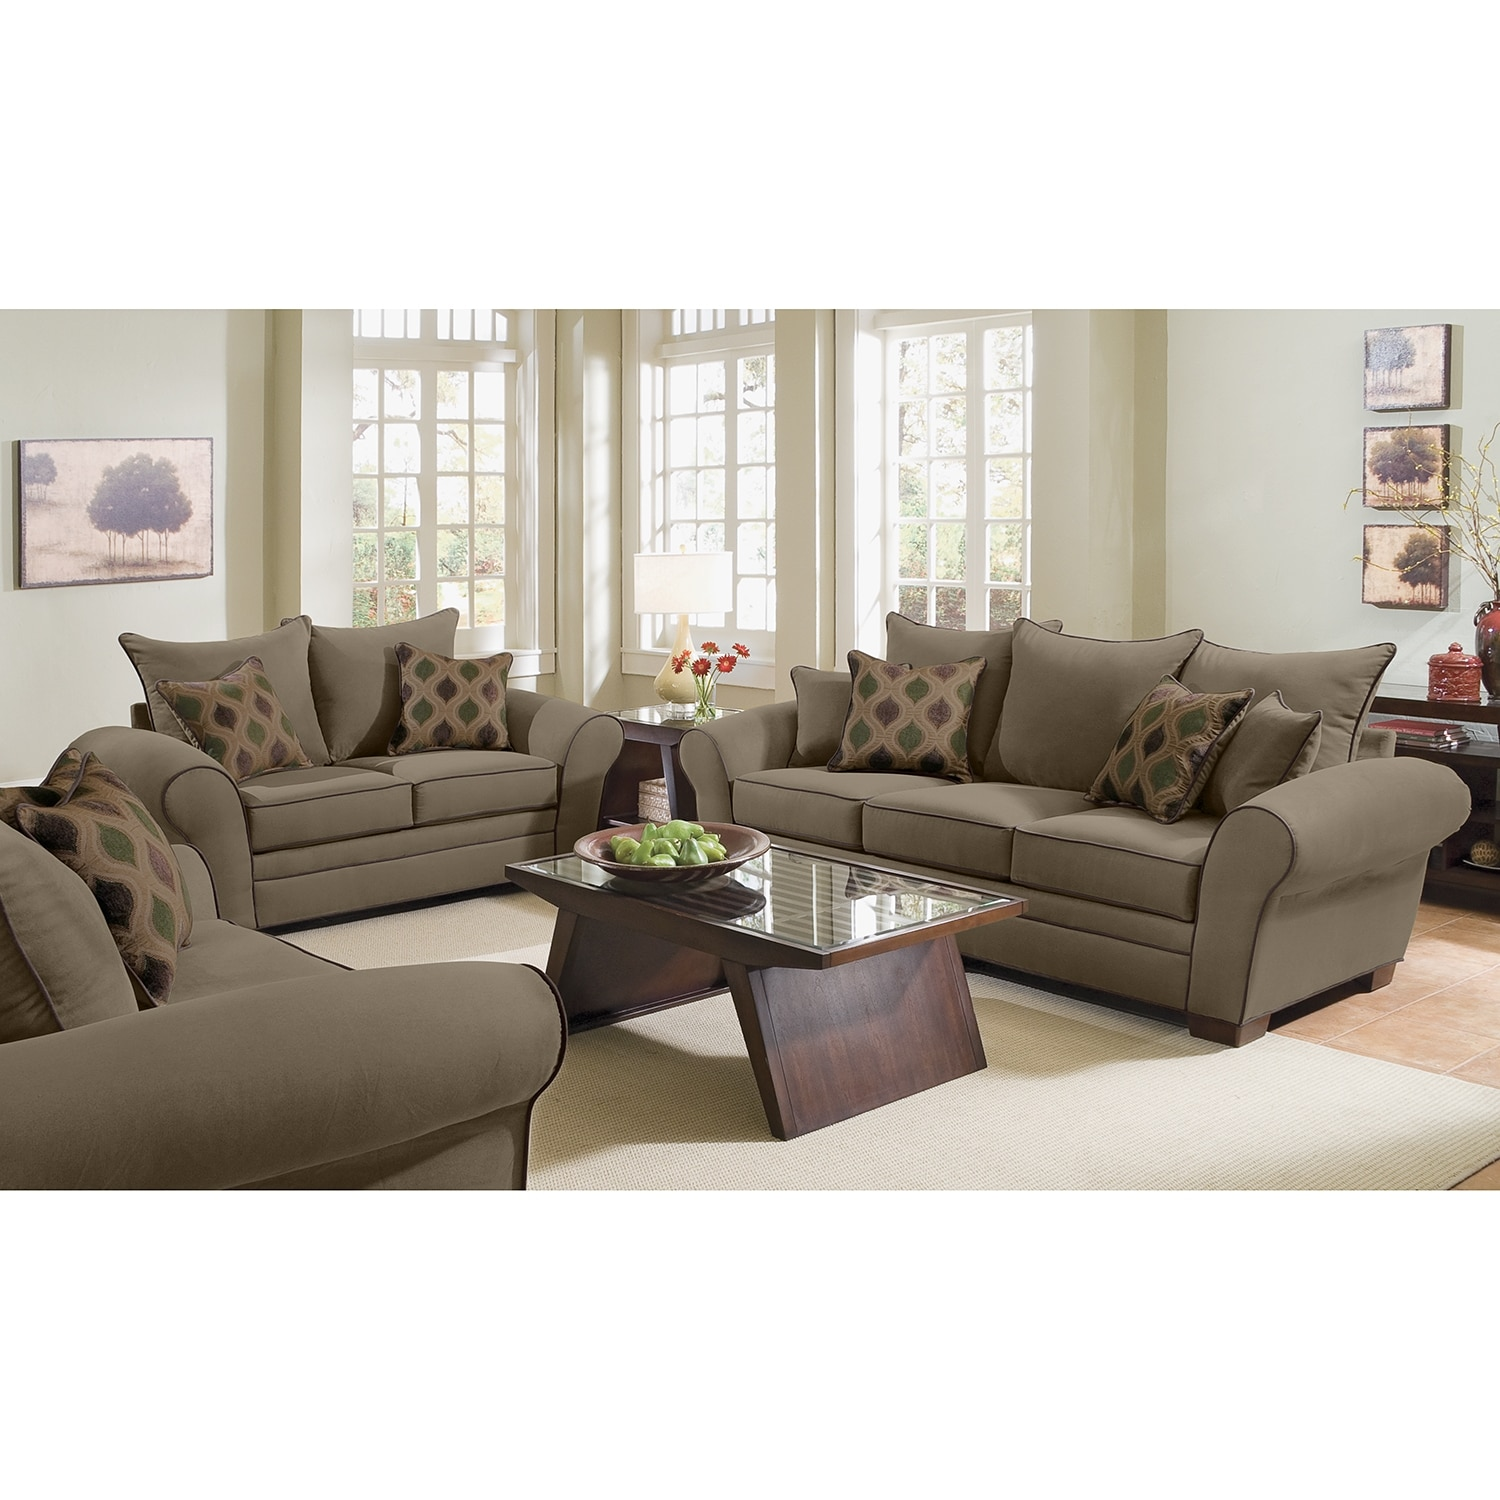 Living Room Furniture For Sale Cheap: Value City Furniture